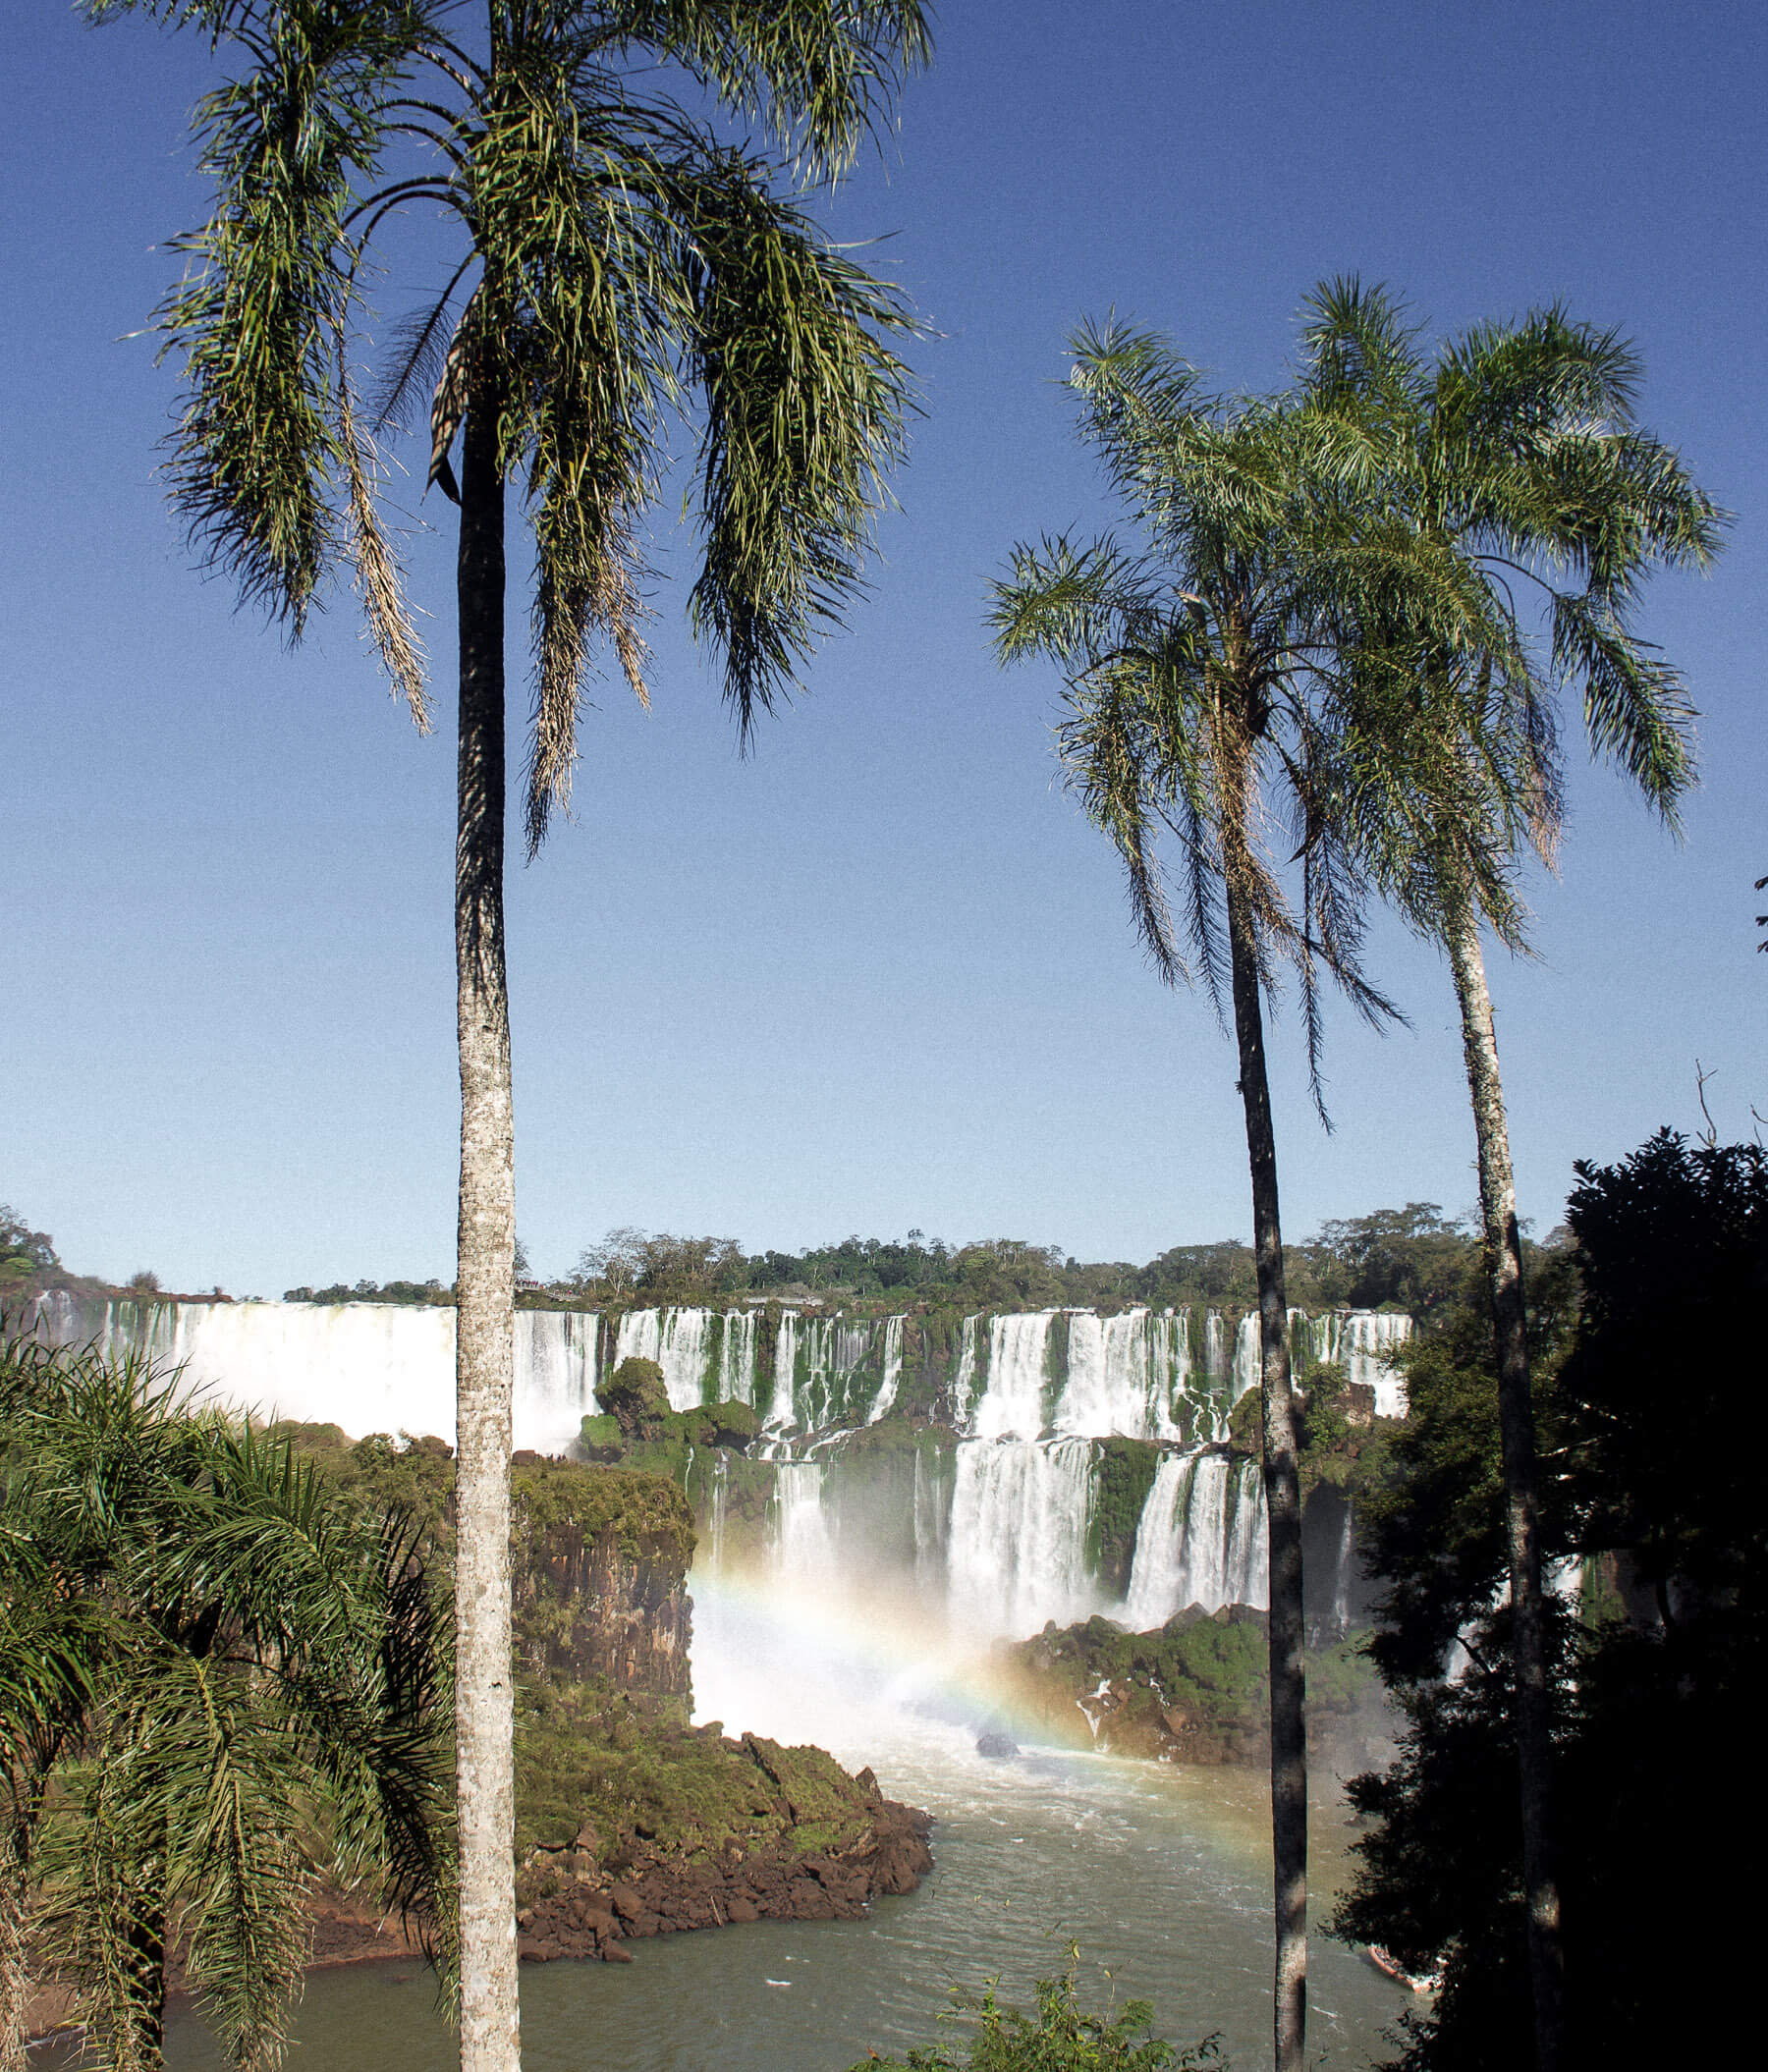 A MAGICAL DAY AT IGUAZU FALLS